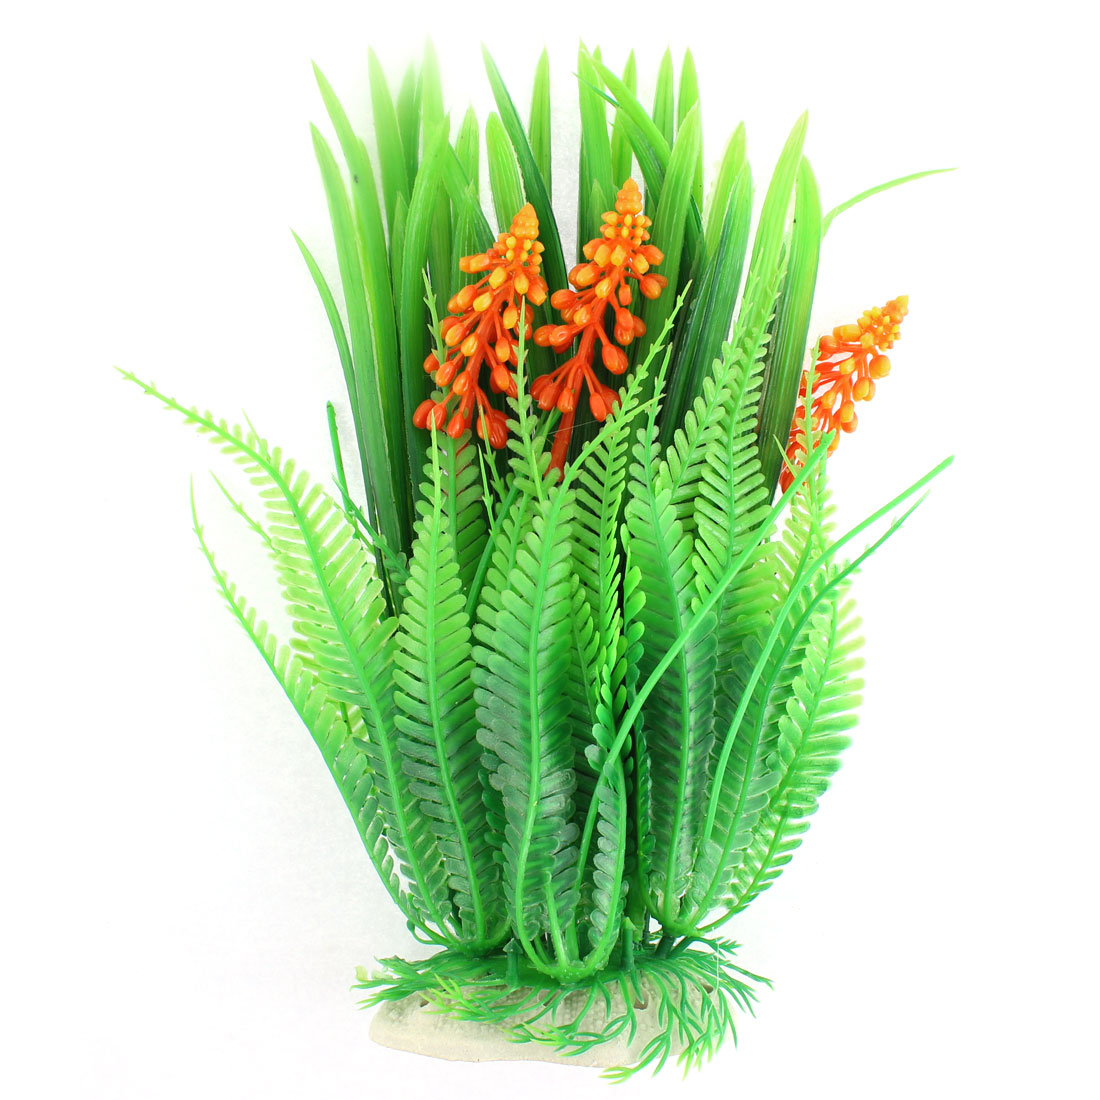 Aquarium Manmade Aquascaping Flower Spike Plant Decor Green Orange